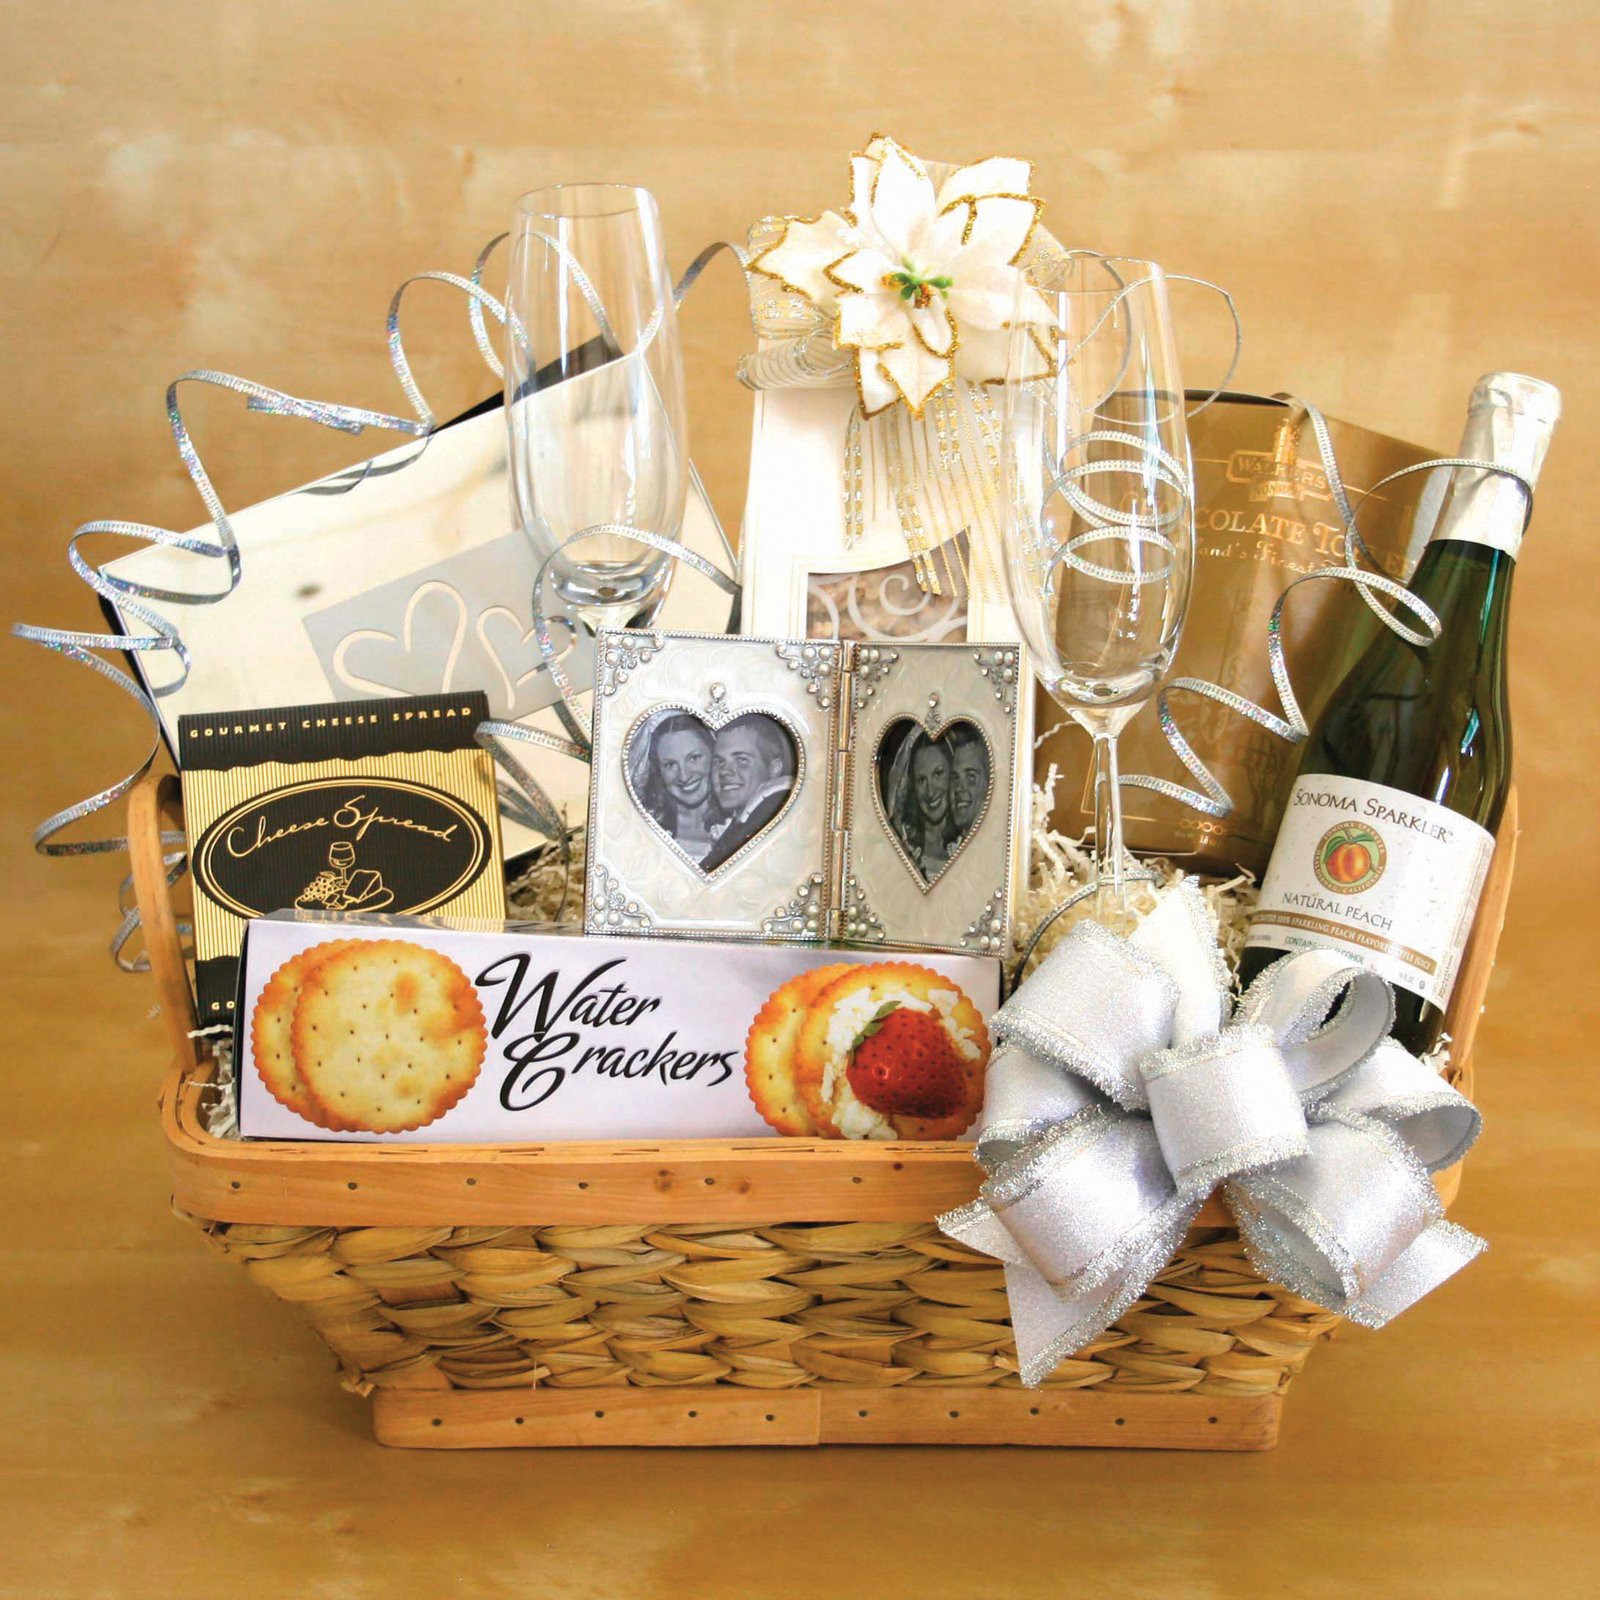 Best ideas about Ideas For Wedding Gift . Save or Pin Simple Wedding Gifts Now.